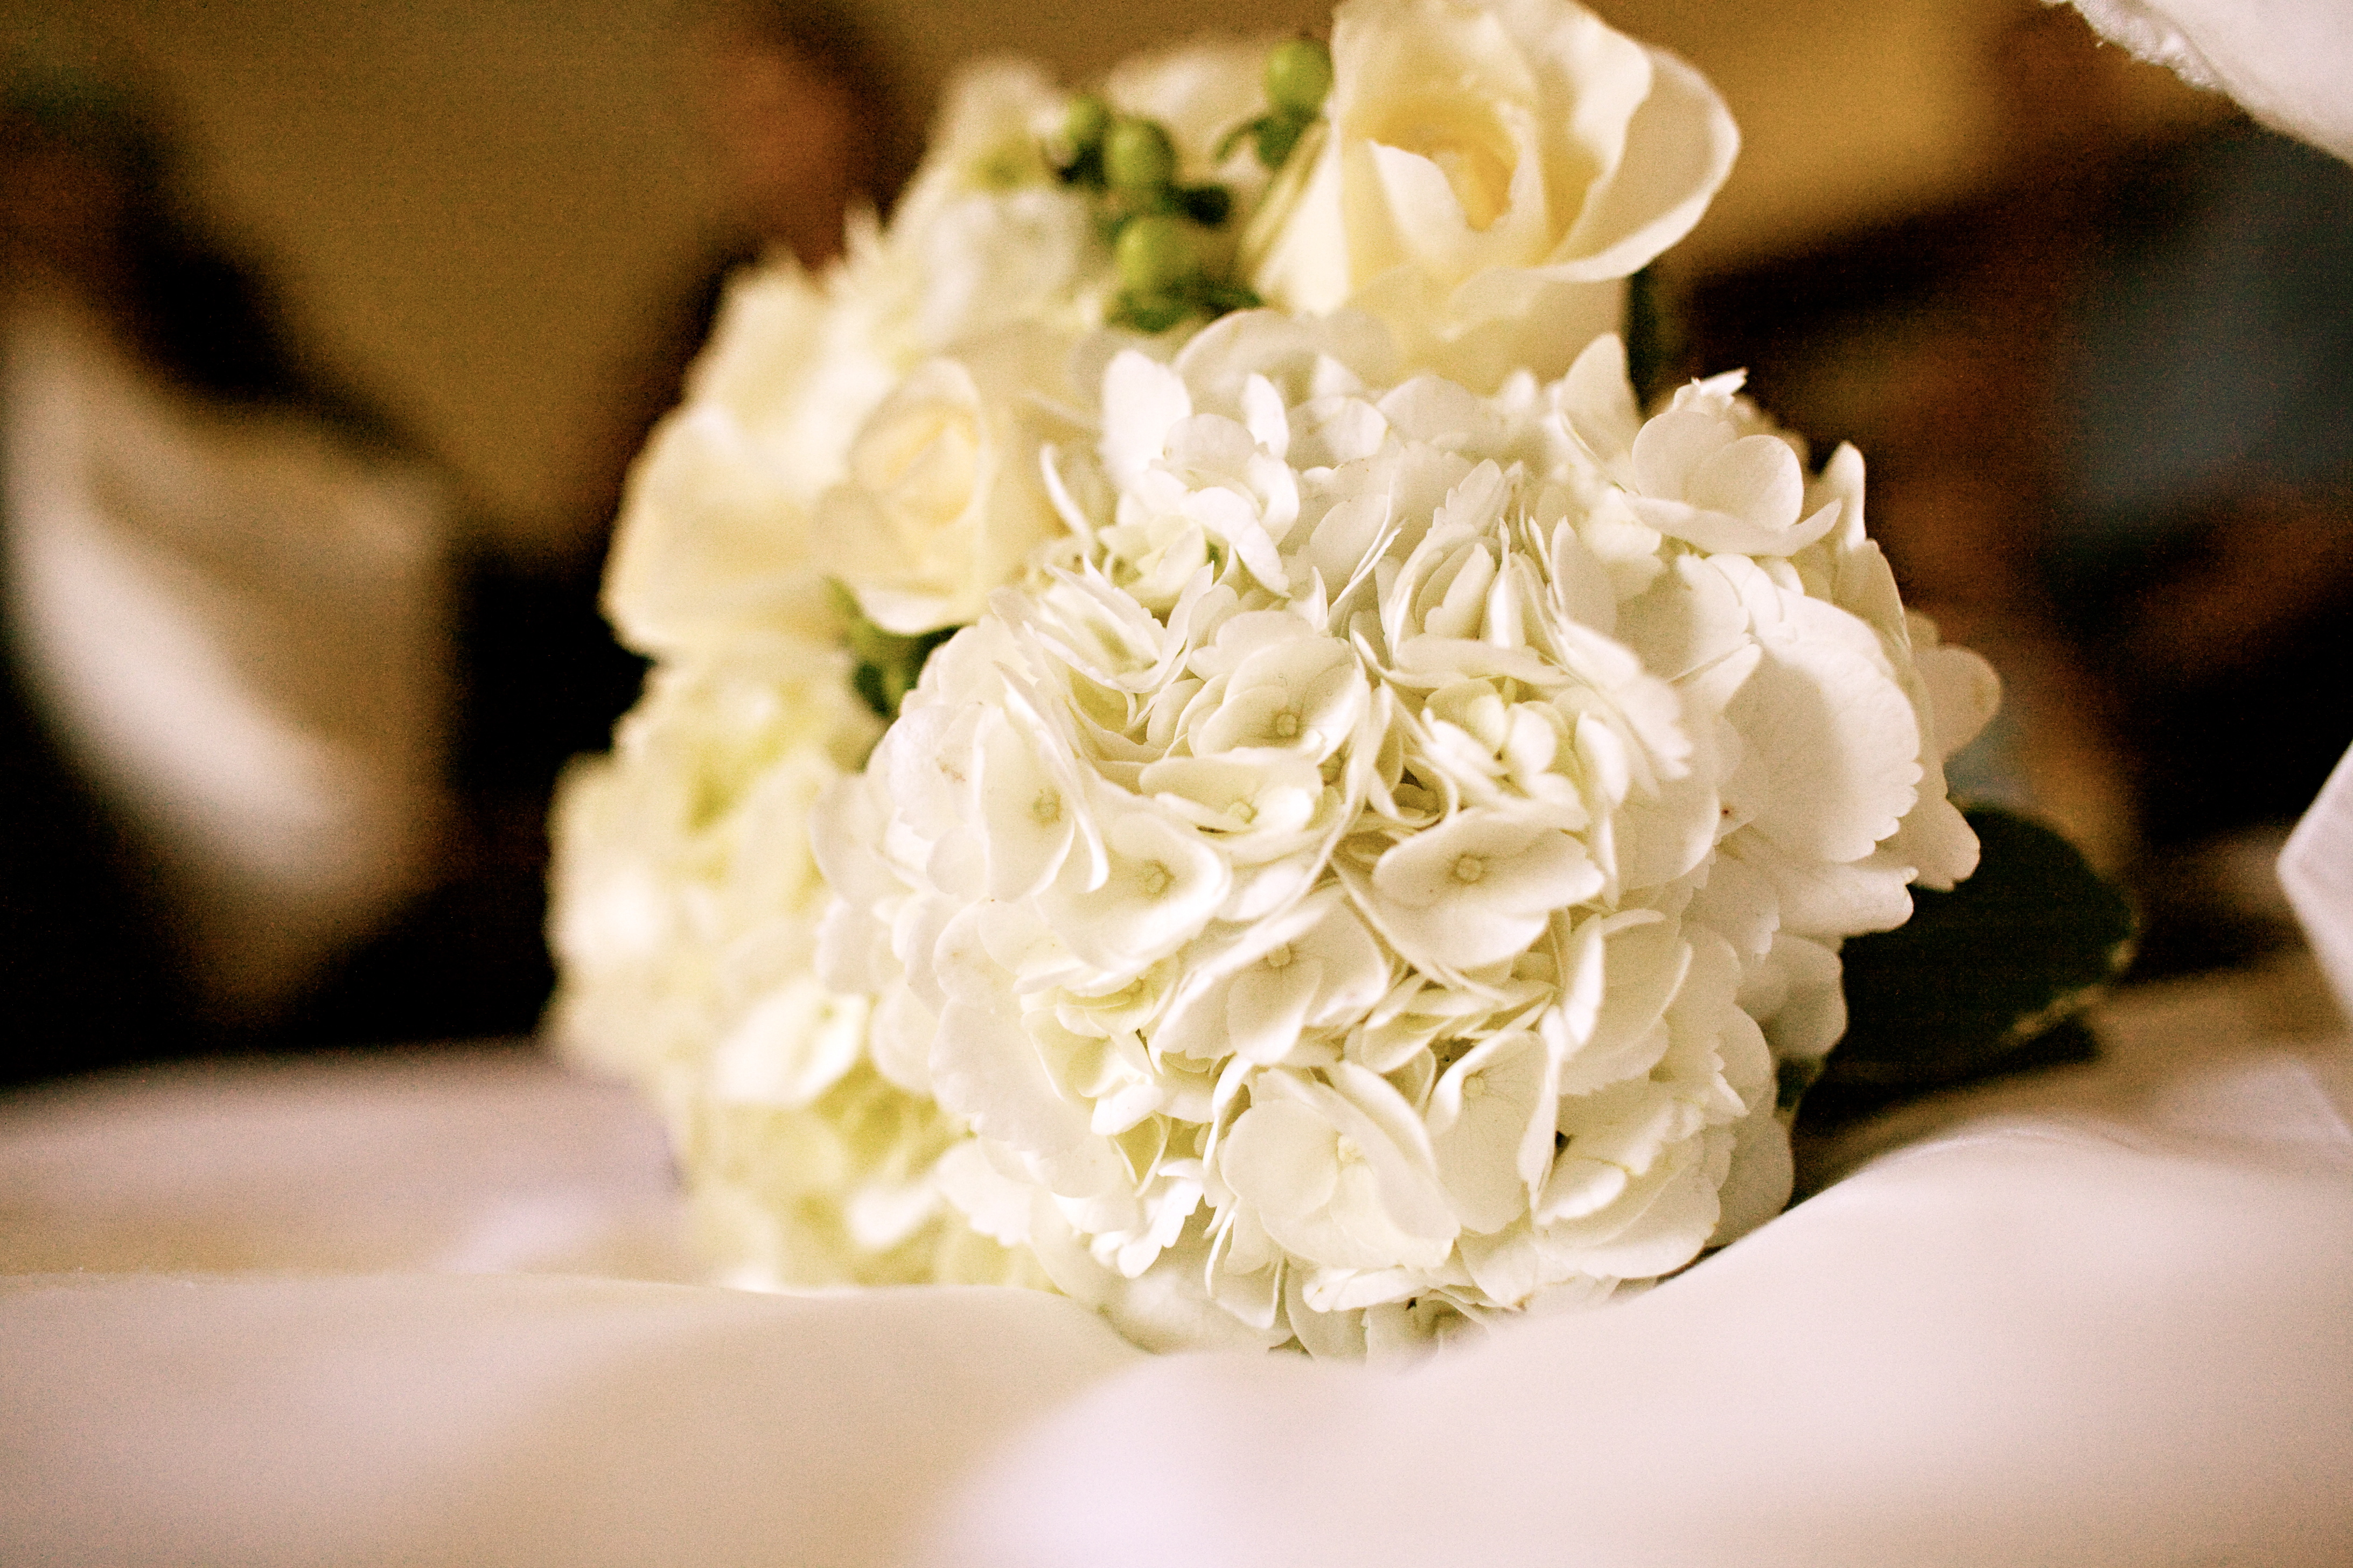 Flowers & Decor, Real Weddings, blue, Flowers, Wedding, bridal bouquet, Pasadena, Wedding photos